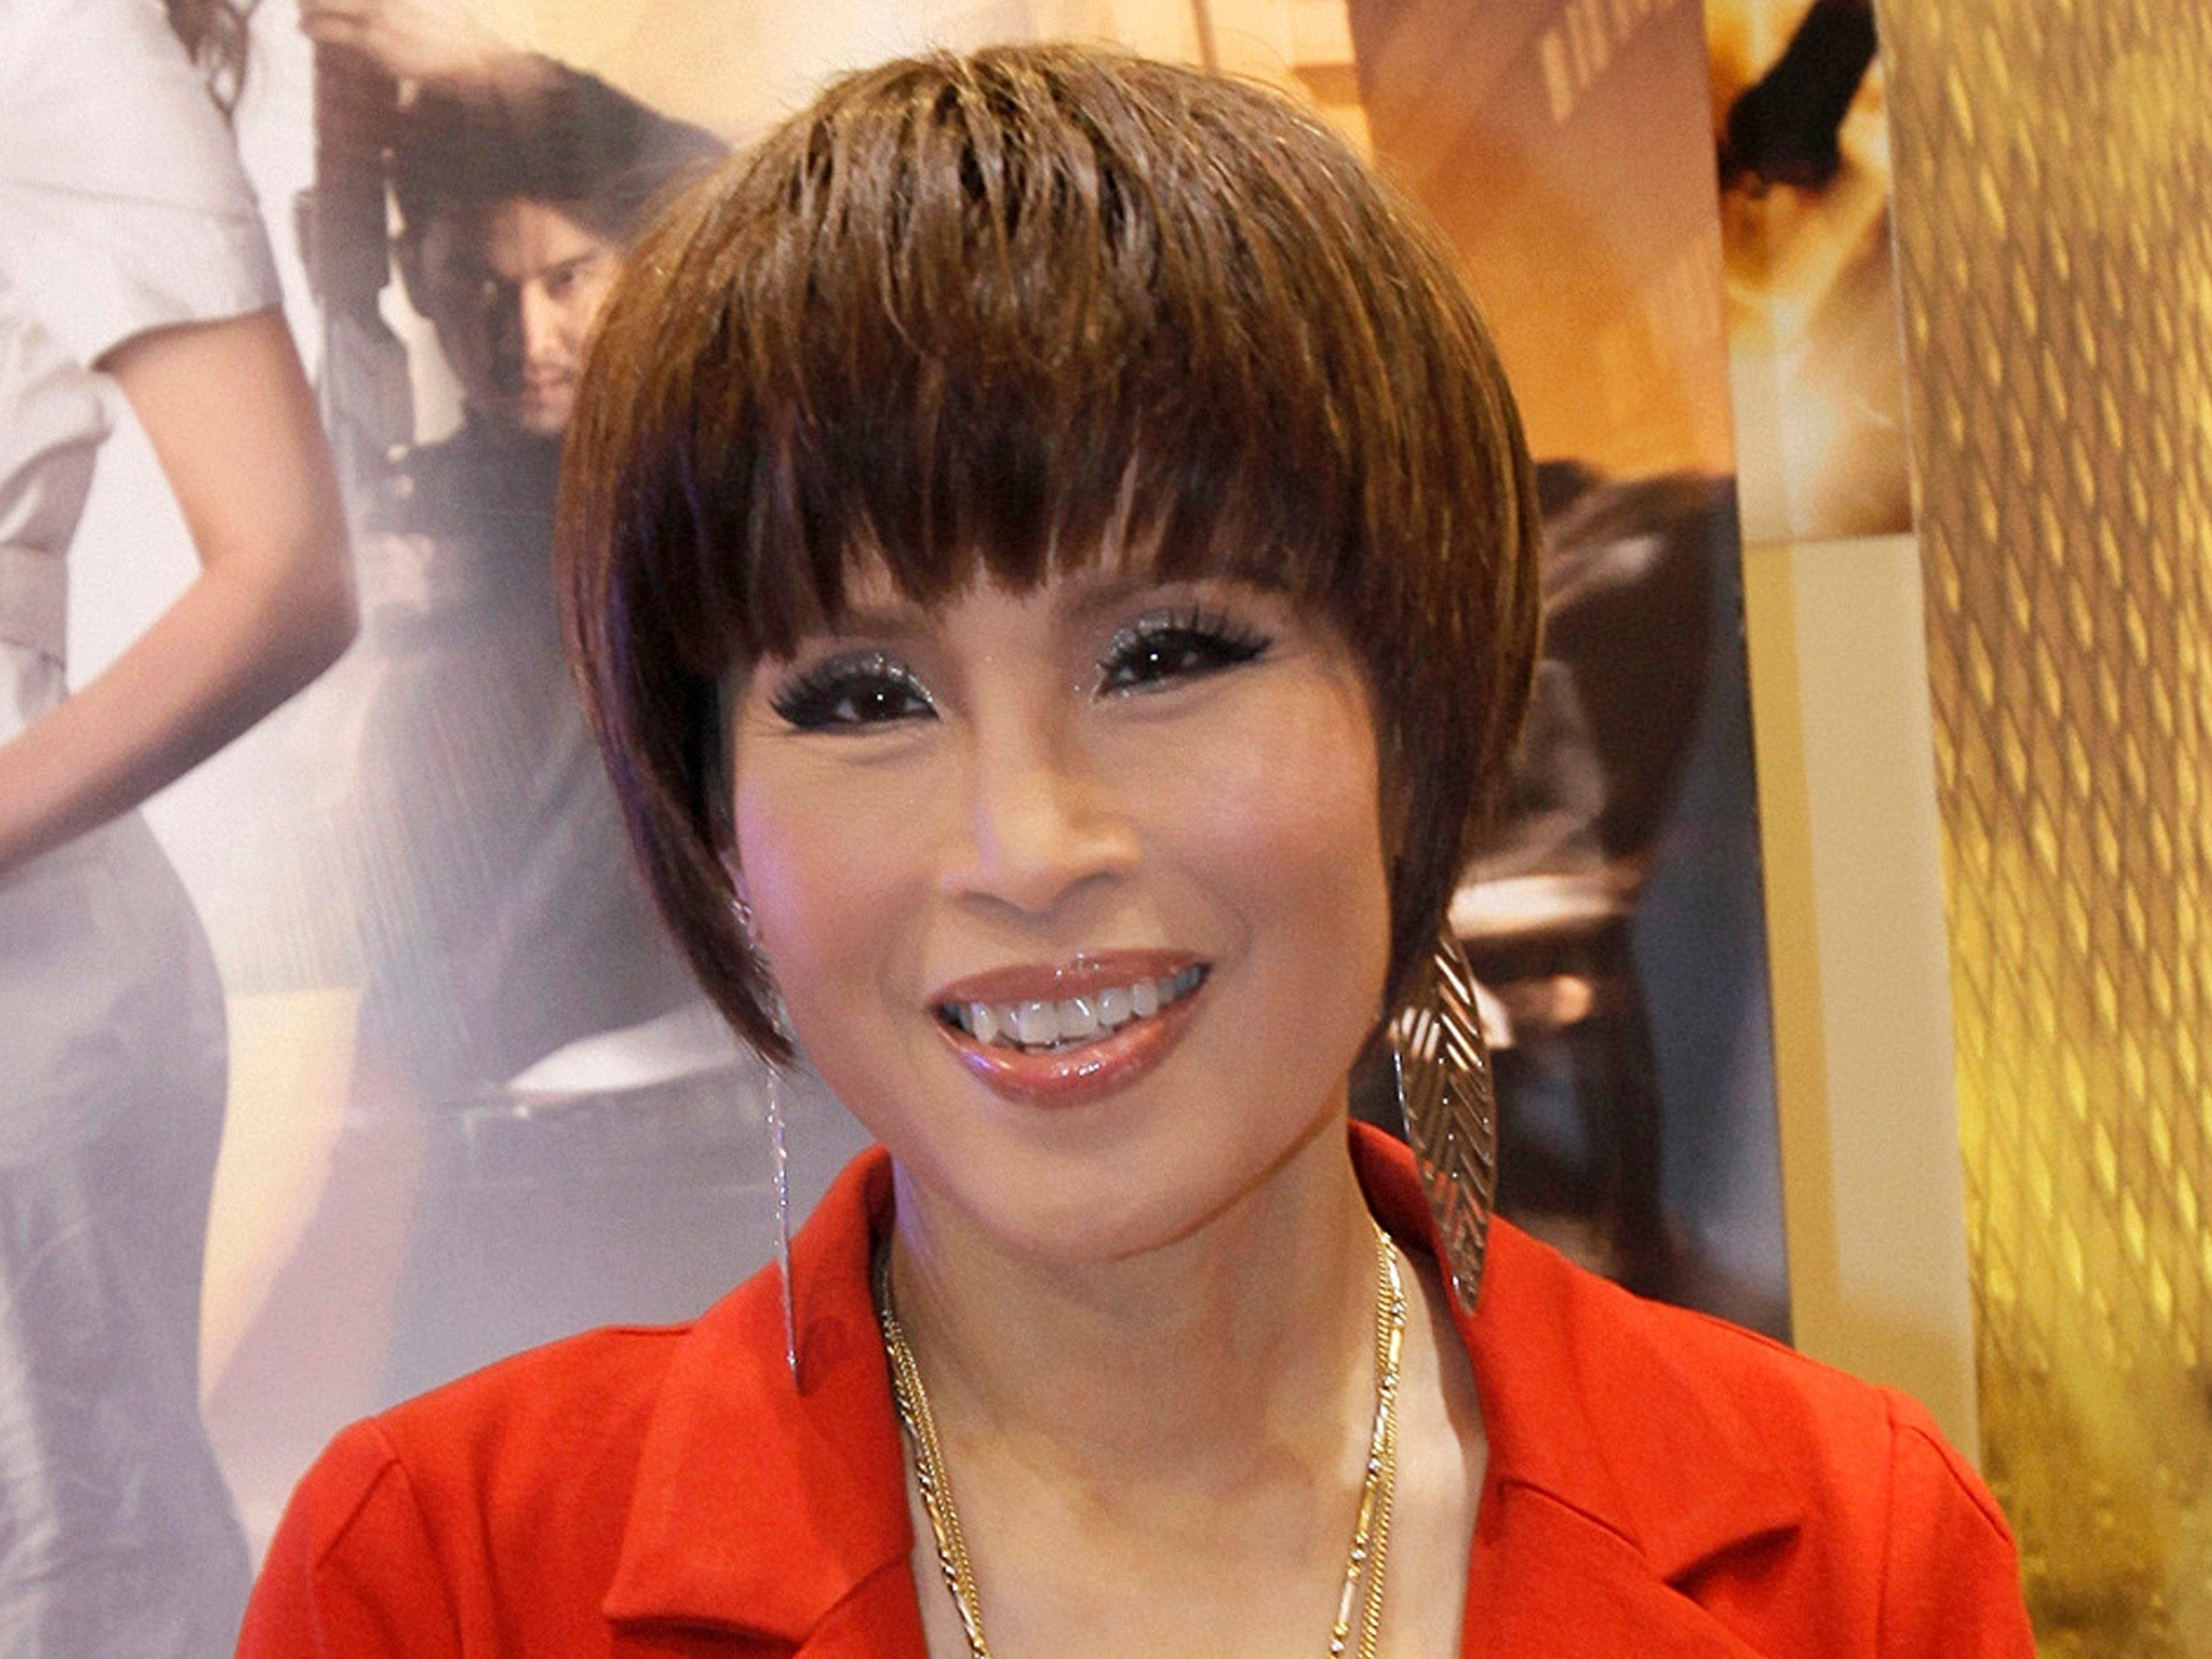 Thai king orders his sister Princess Ubolratana be removed from race to become prime minister